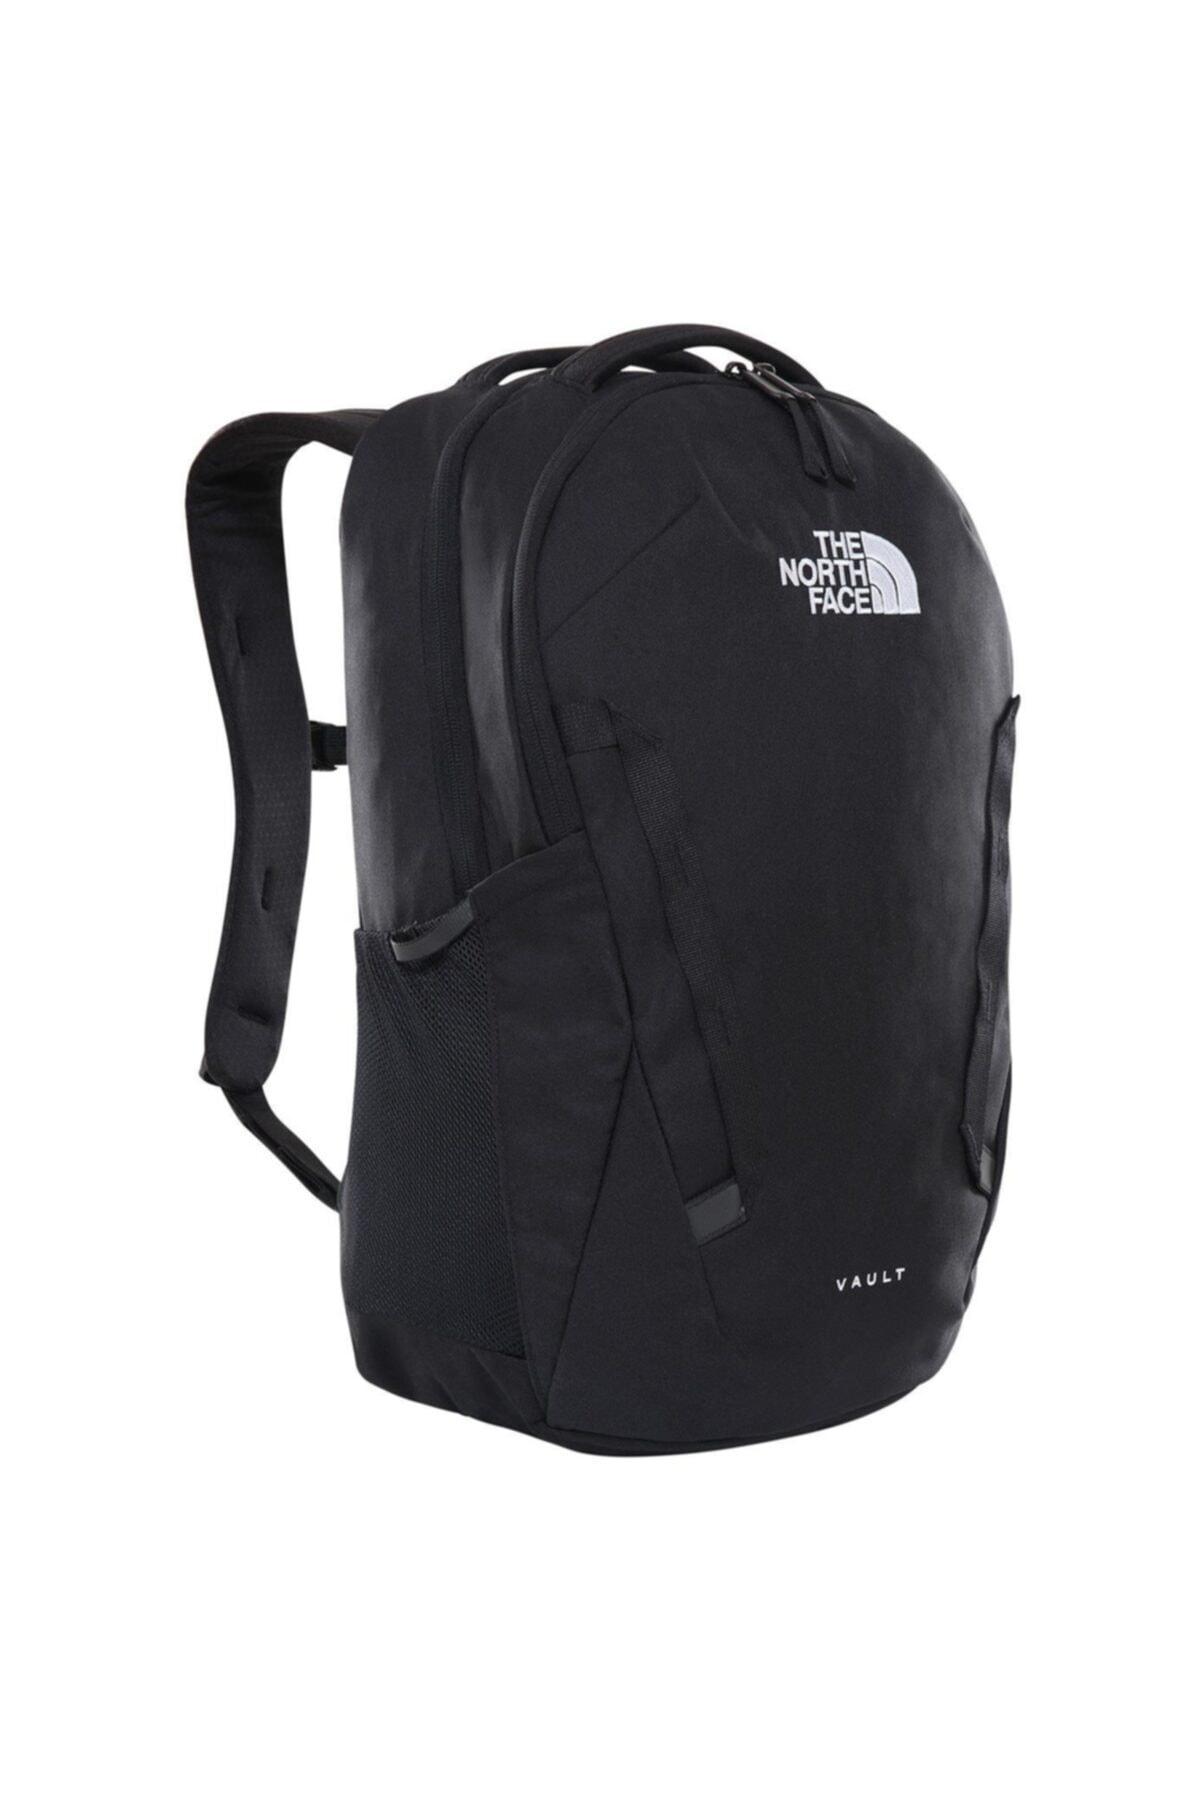 THE NORTH FACE The Northface Vault Çanta Nf0a3vy2jk31 1